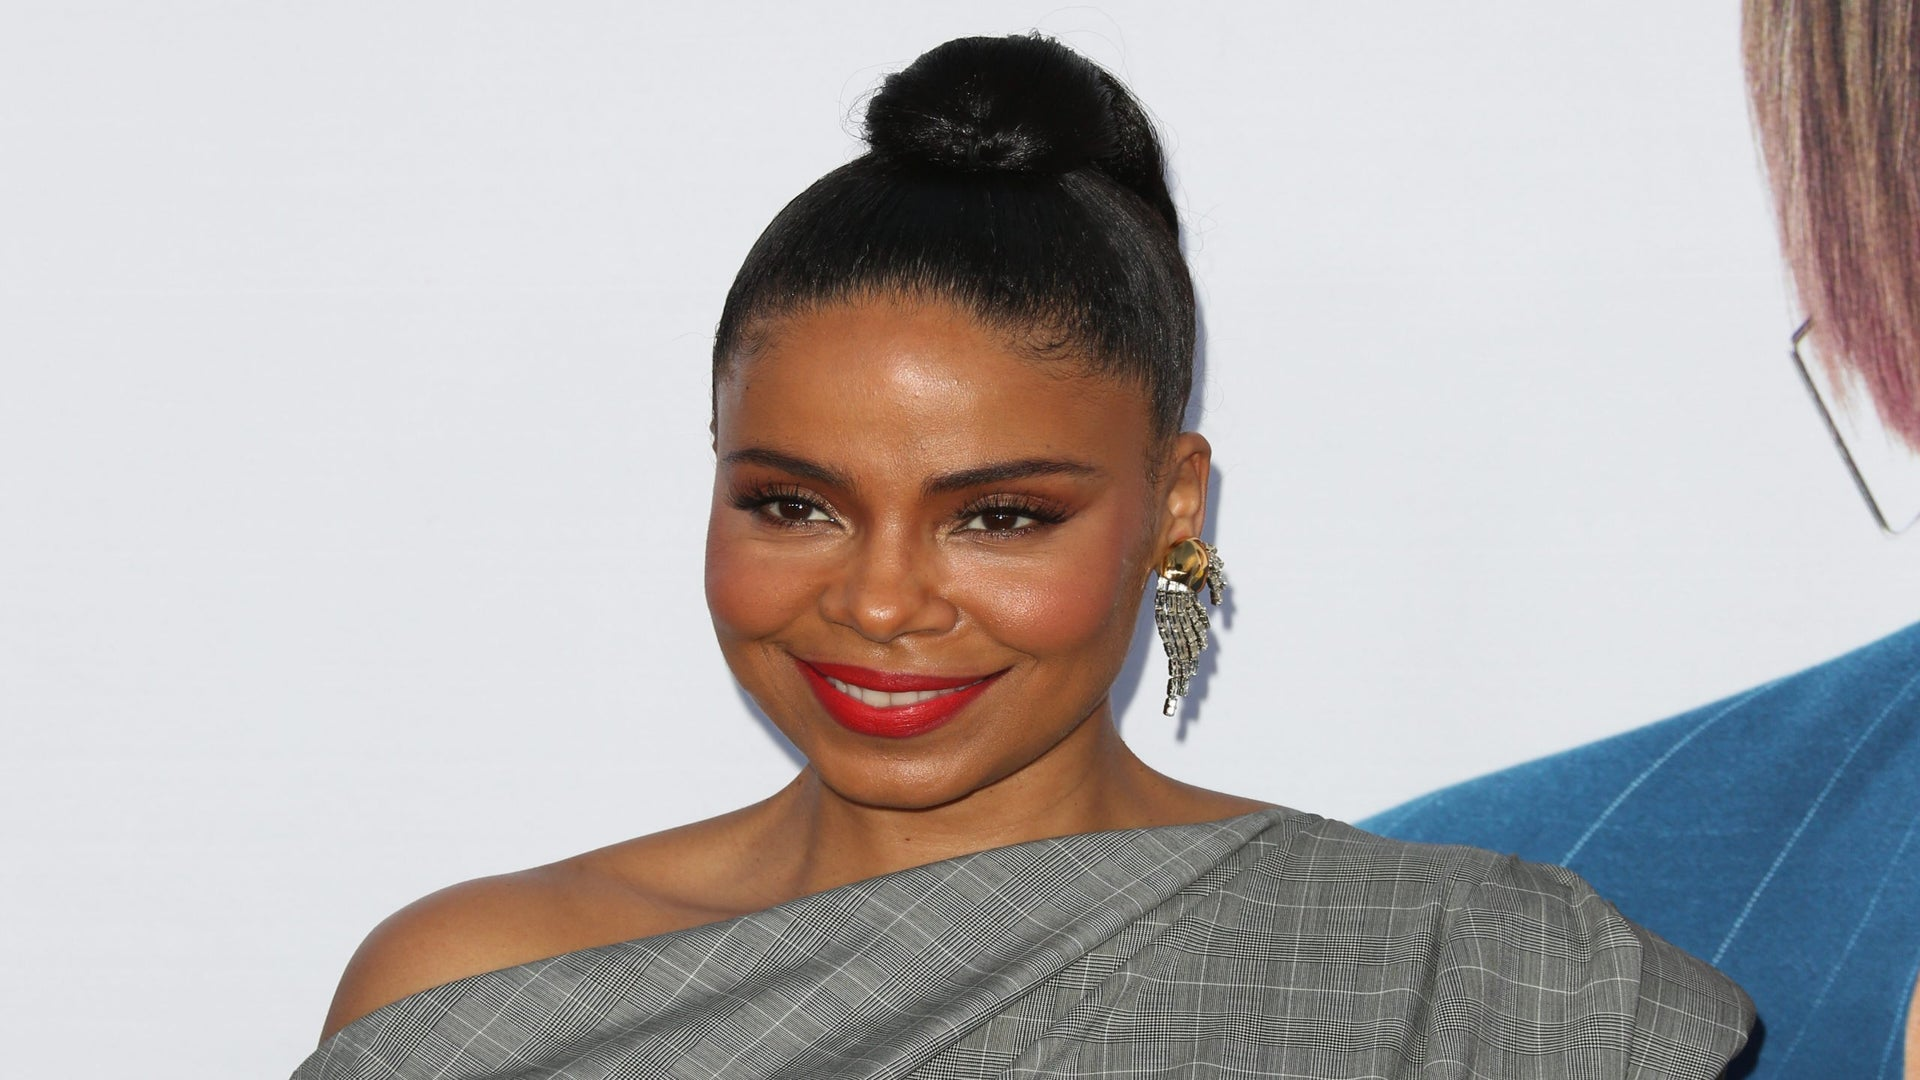 Sanaa Lathan Shows Her Extreme Hair Growth Since Going Bald For 'Nappily Ever After'